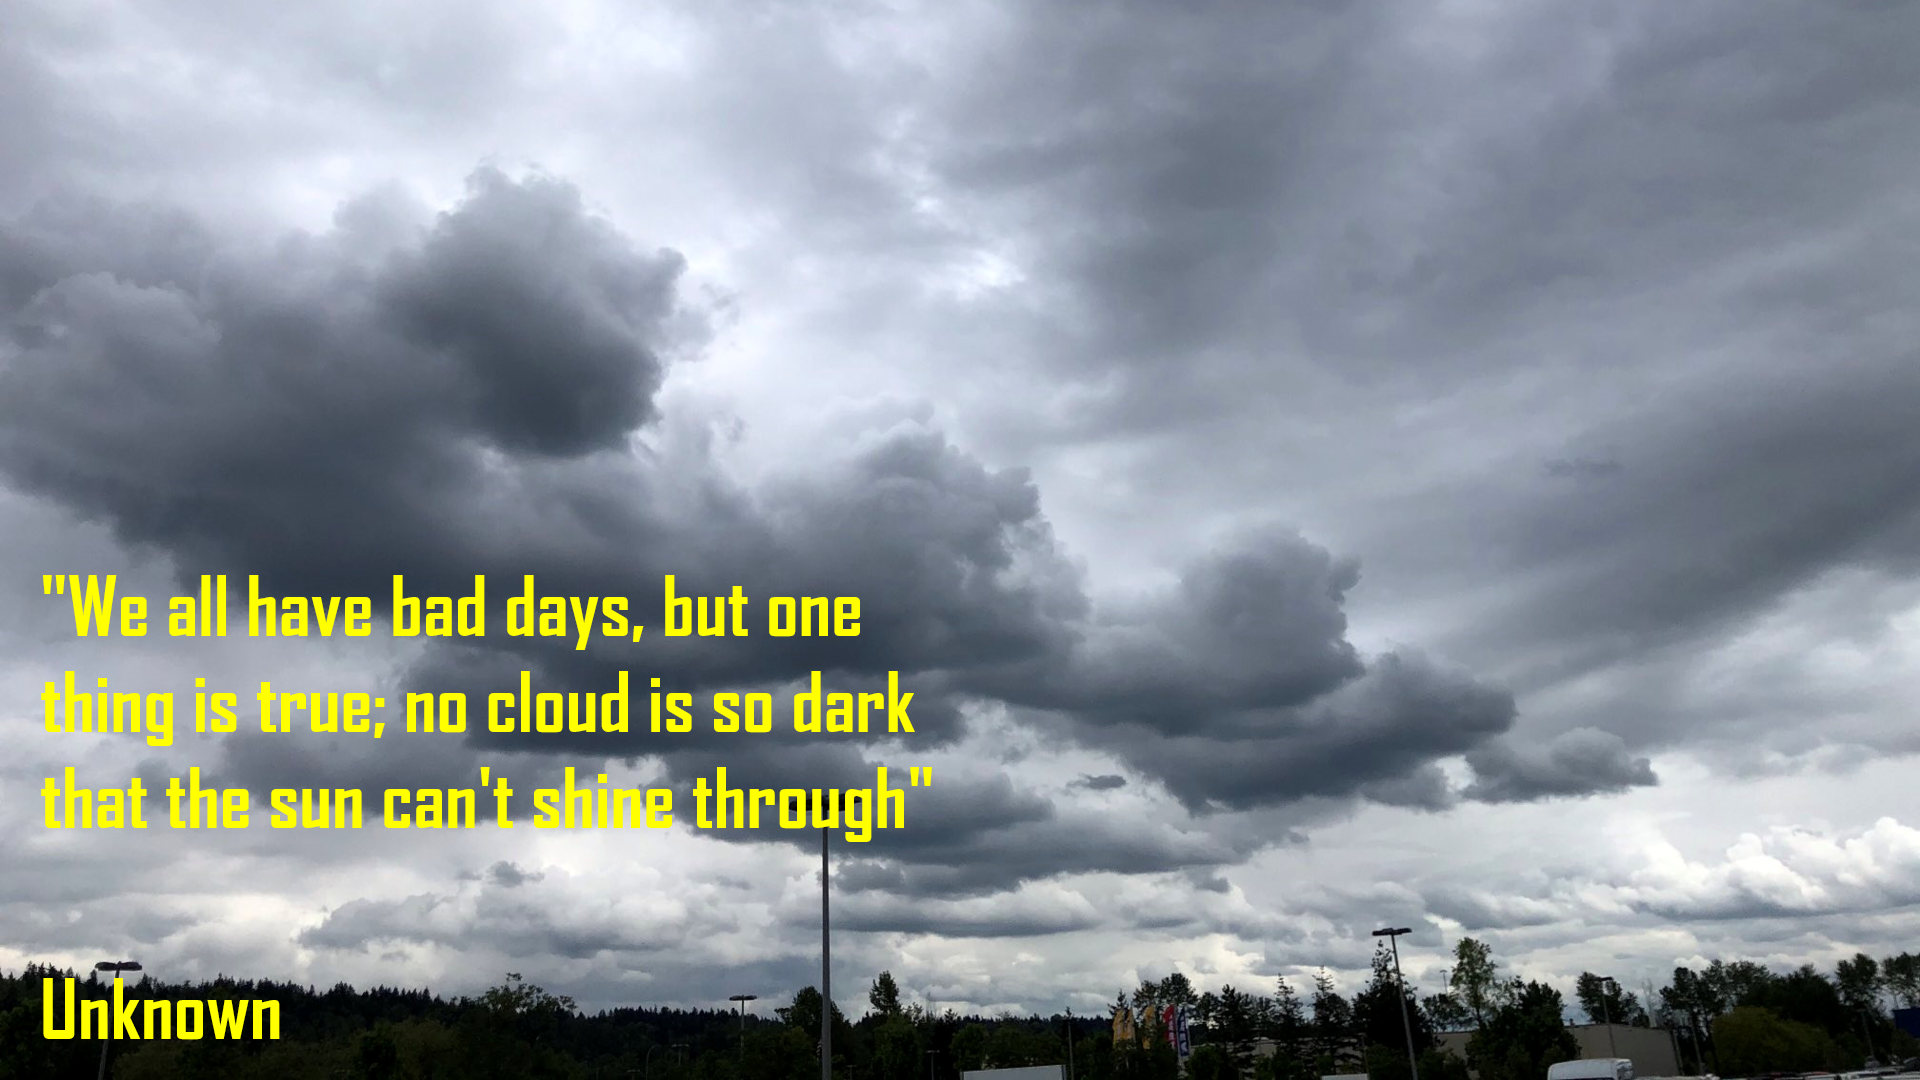 We all have bad days, but one thing is true; no cloud is so dark that the sun can't shine through